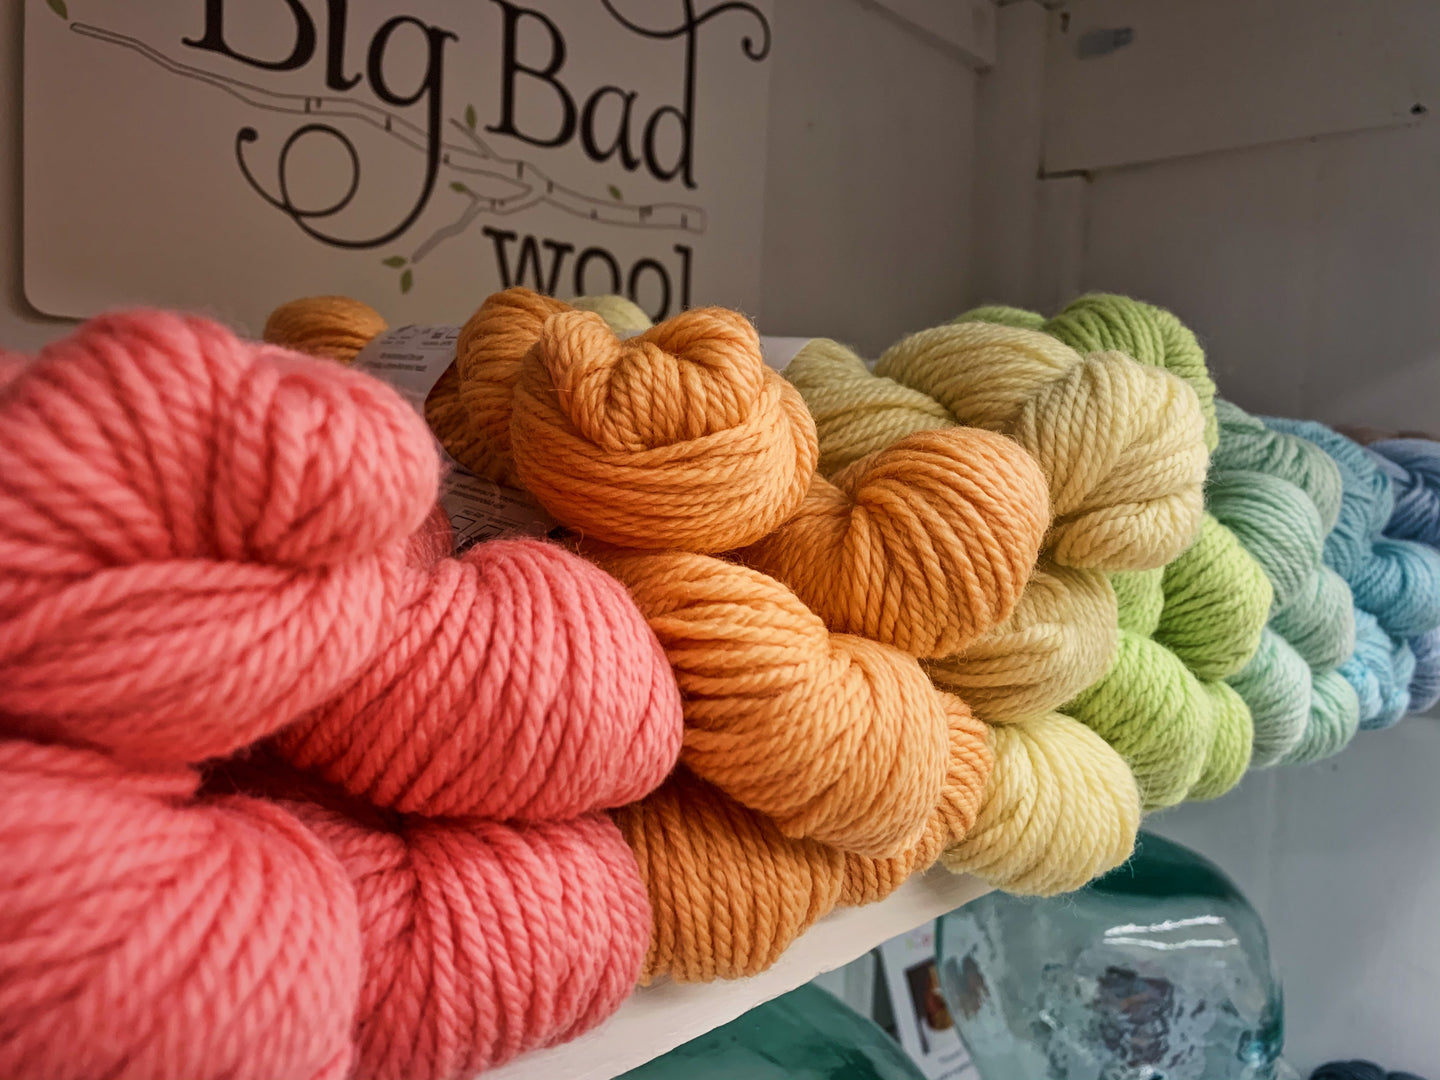 Big Bad Wool